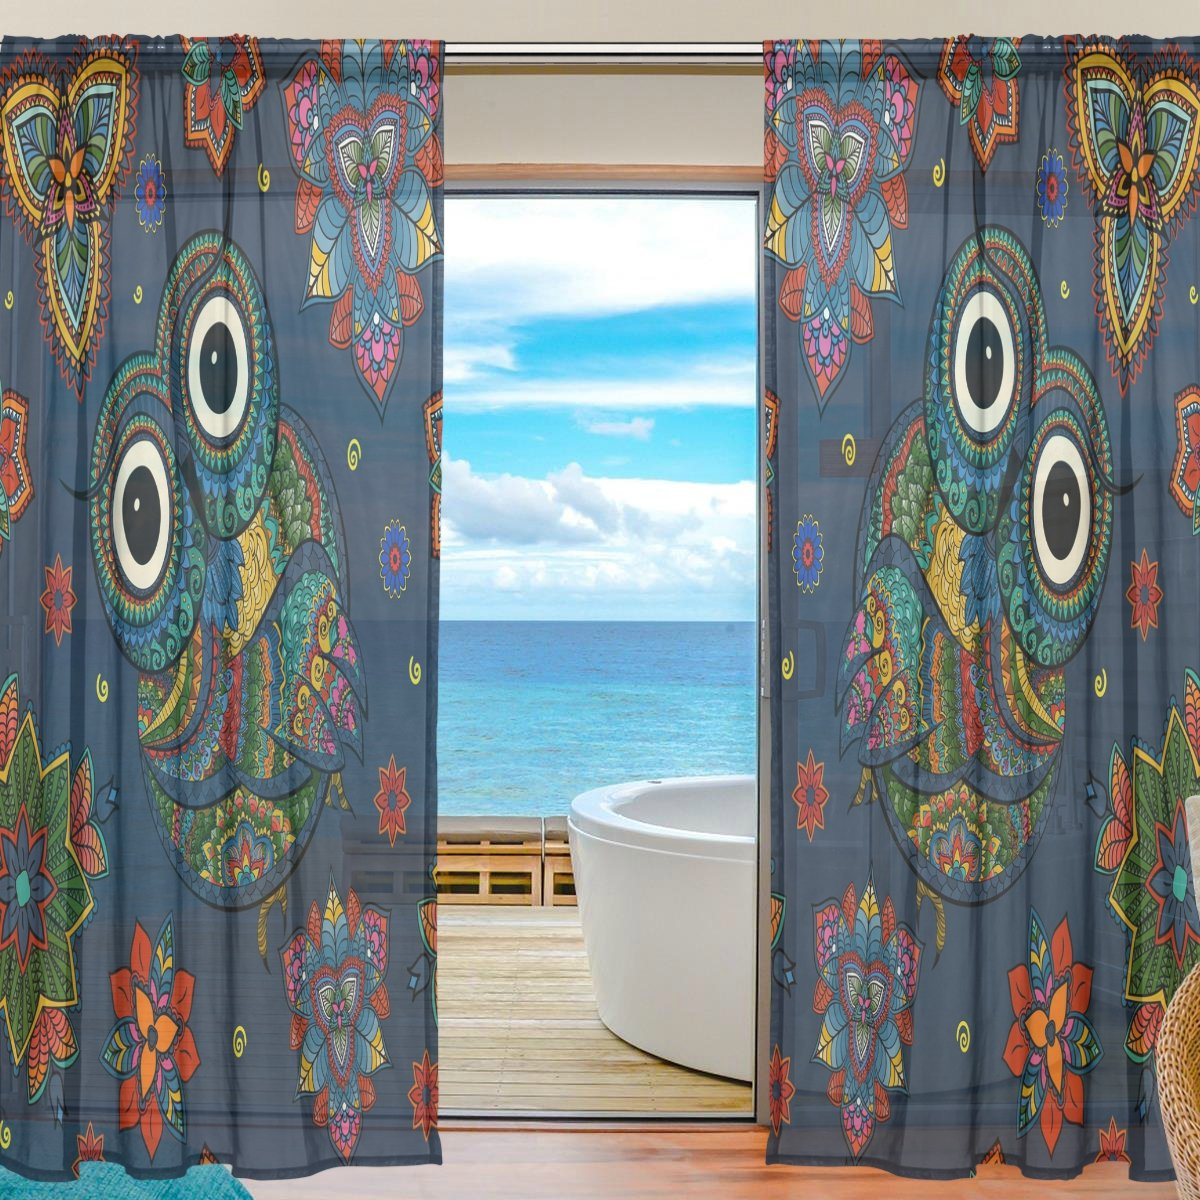 SEULIFE Window Sheer Curtain Tribal Animal Owl Boho Floral Voile Curtain Drapes for Door Kitchen Living Room Bedroom 55x78 inches 2 Panels by SEULIFE